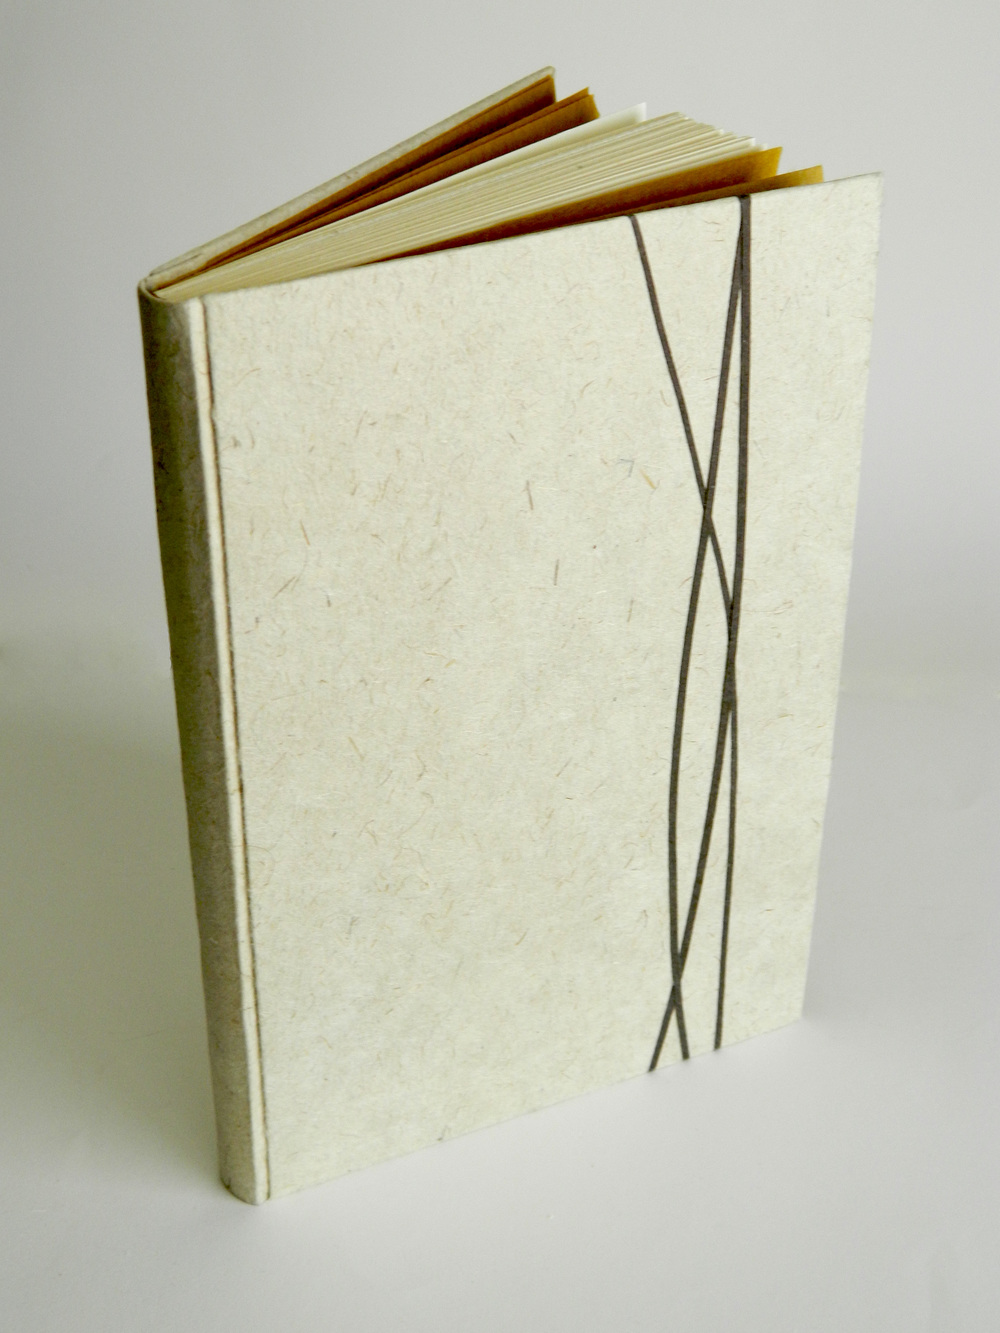 Simplified binding